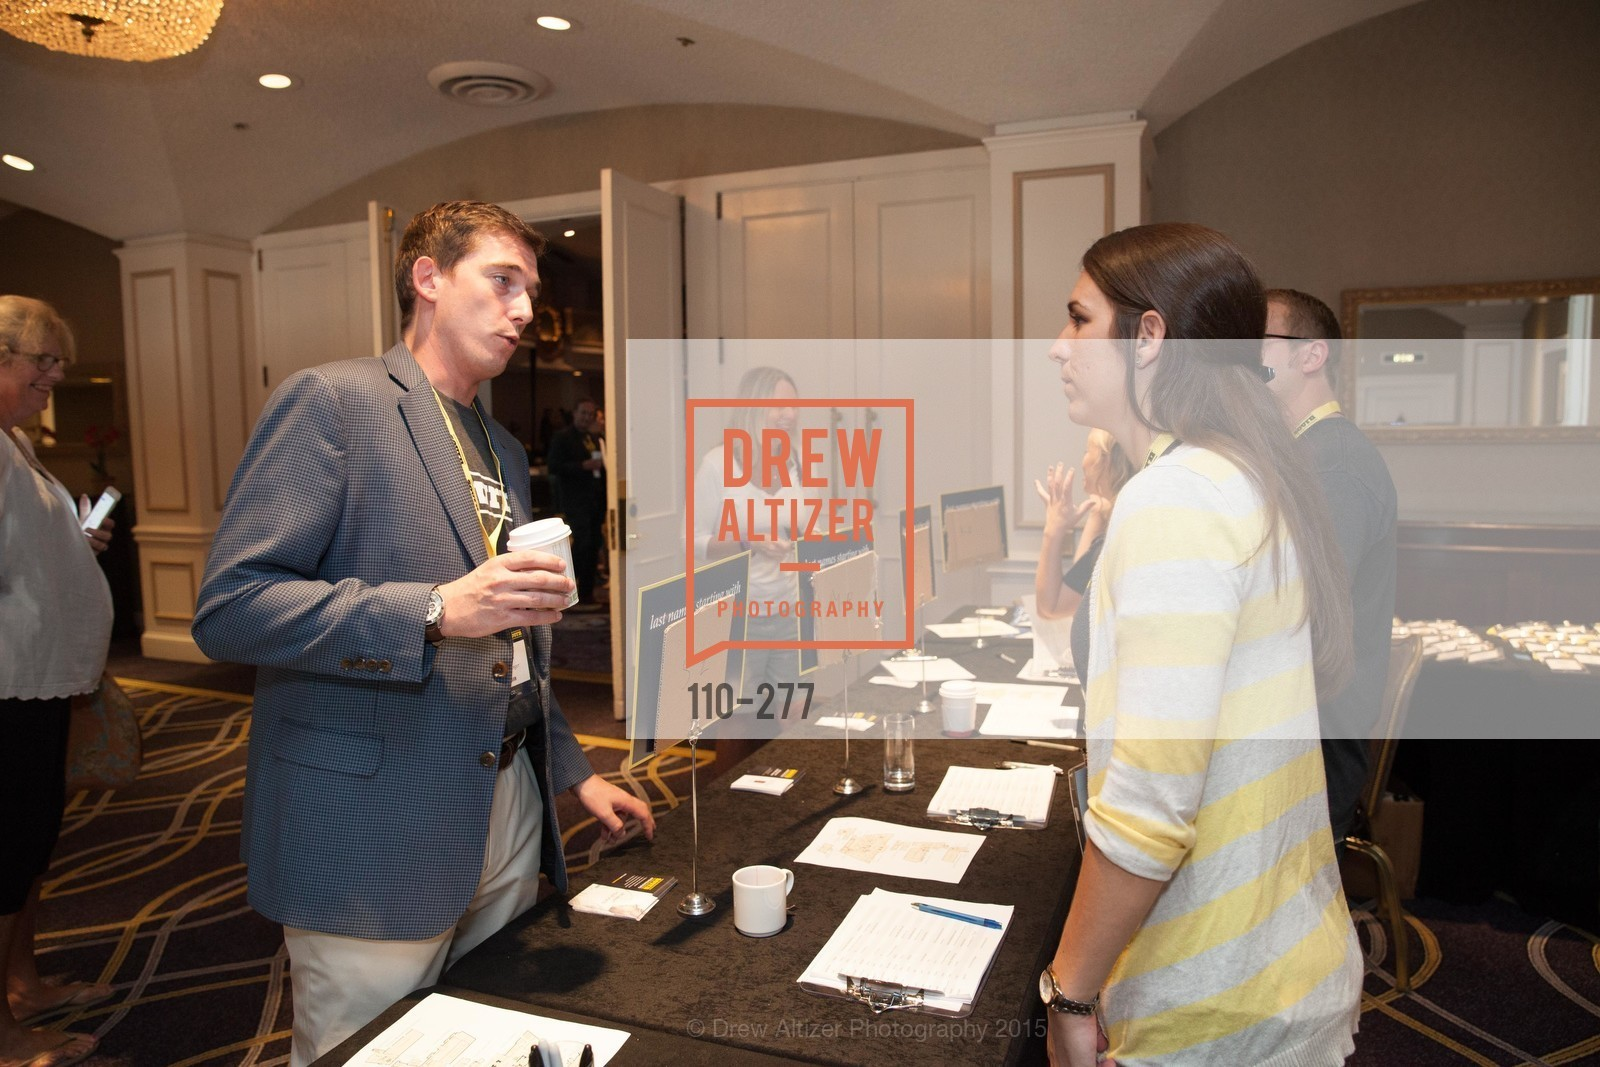 Top Picks, sovrn i 2 summit 2015, September 9th, 2015, Photo,Drew Altizer, Drew Altizer Photography, full-service event agency, private events, San Francisco photographer, photographer California